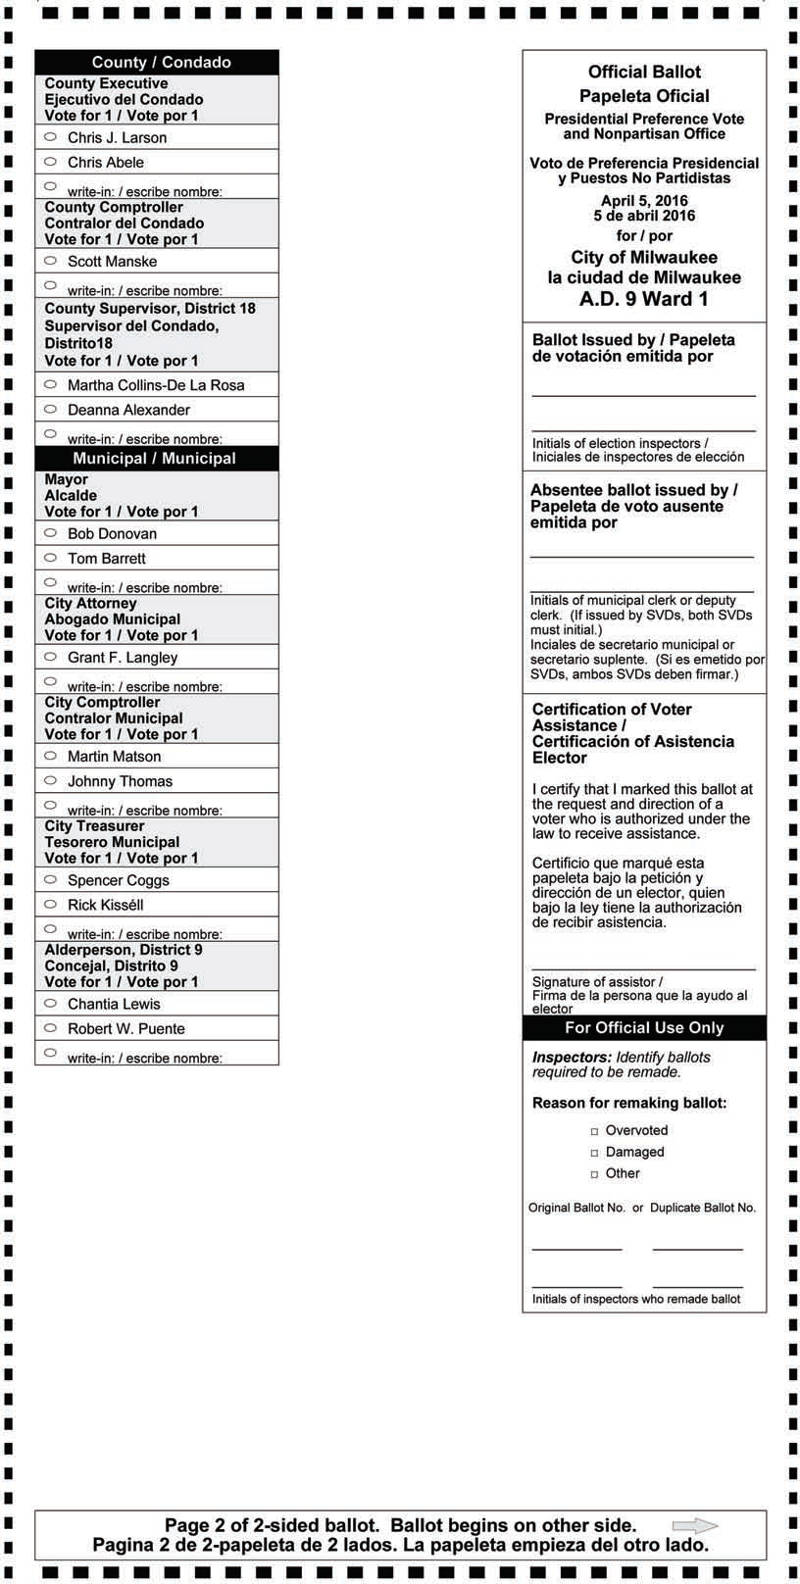 Spring-Election-Presidential-Preference-Vote-Sample-Ballots-optical-scan-page-2